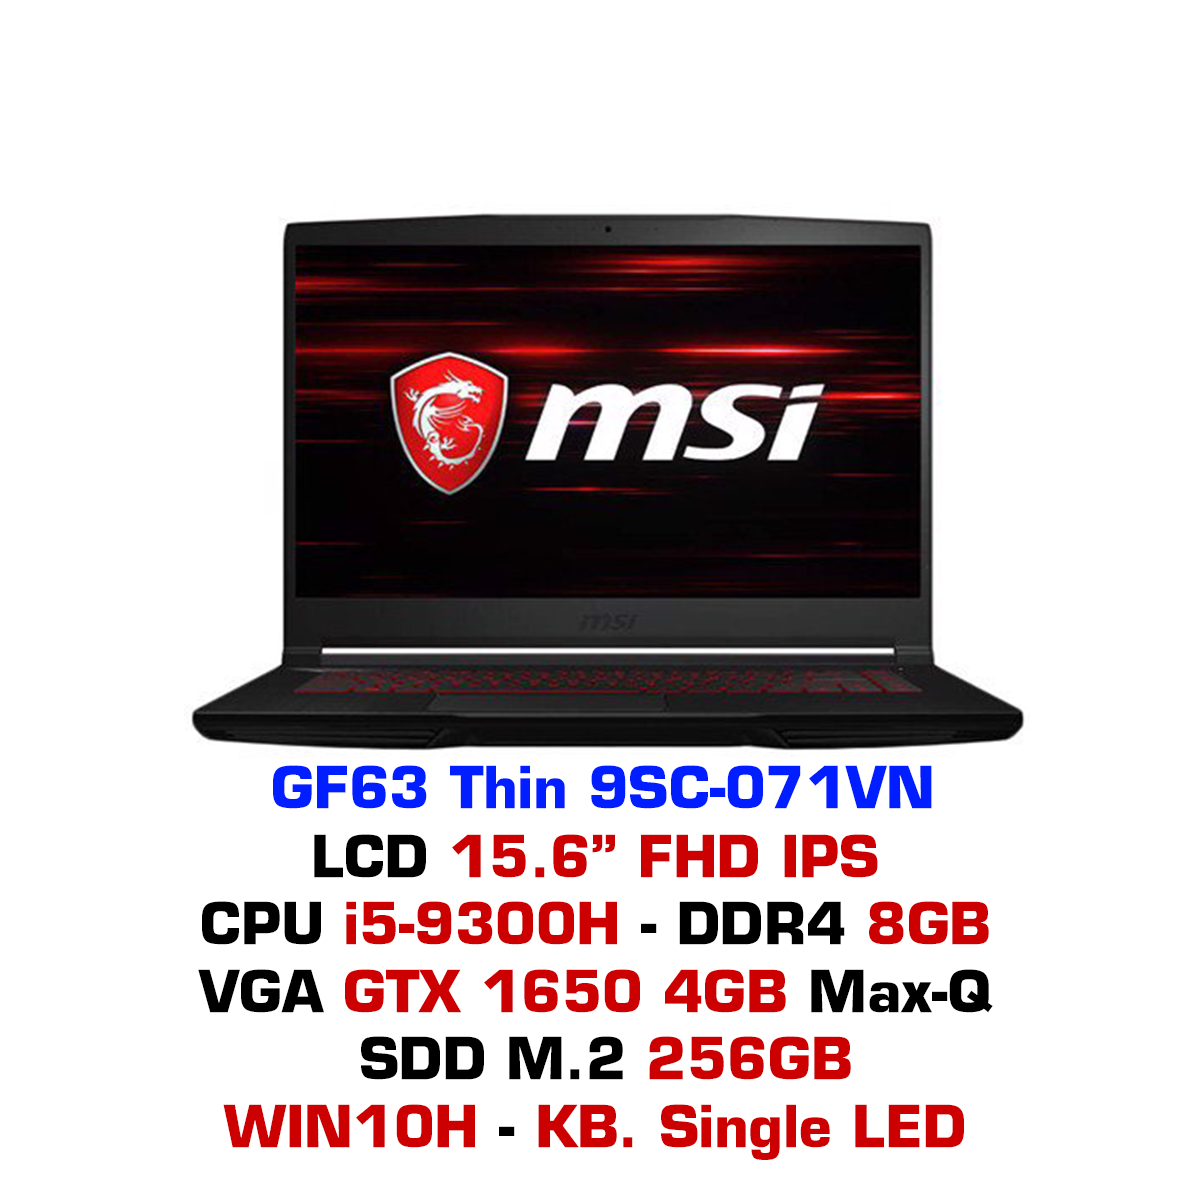 Laptop Gaming MSI GF63 Thin 9SC-071VN